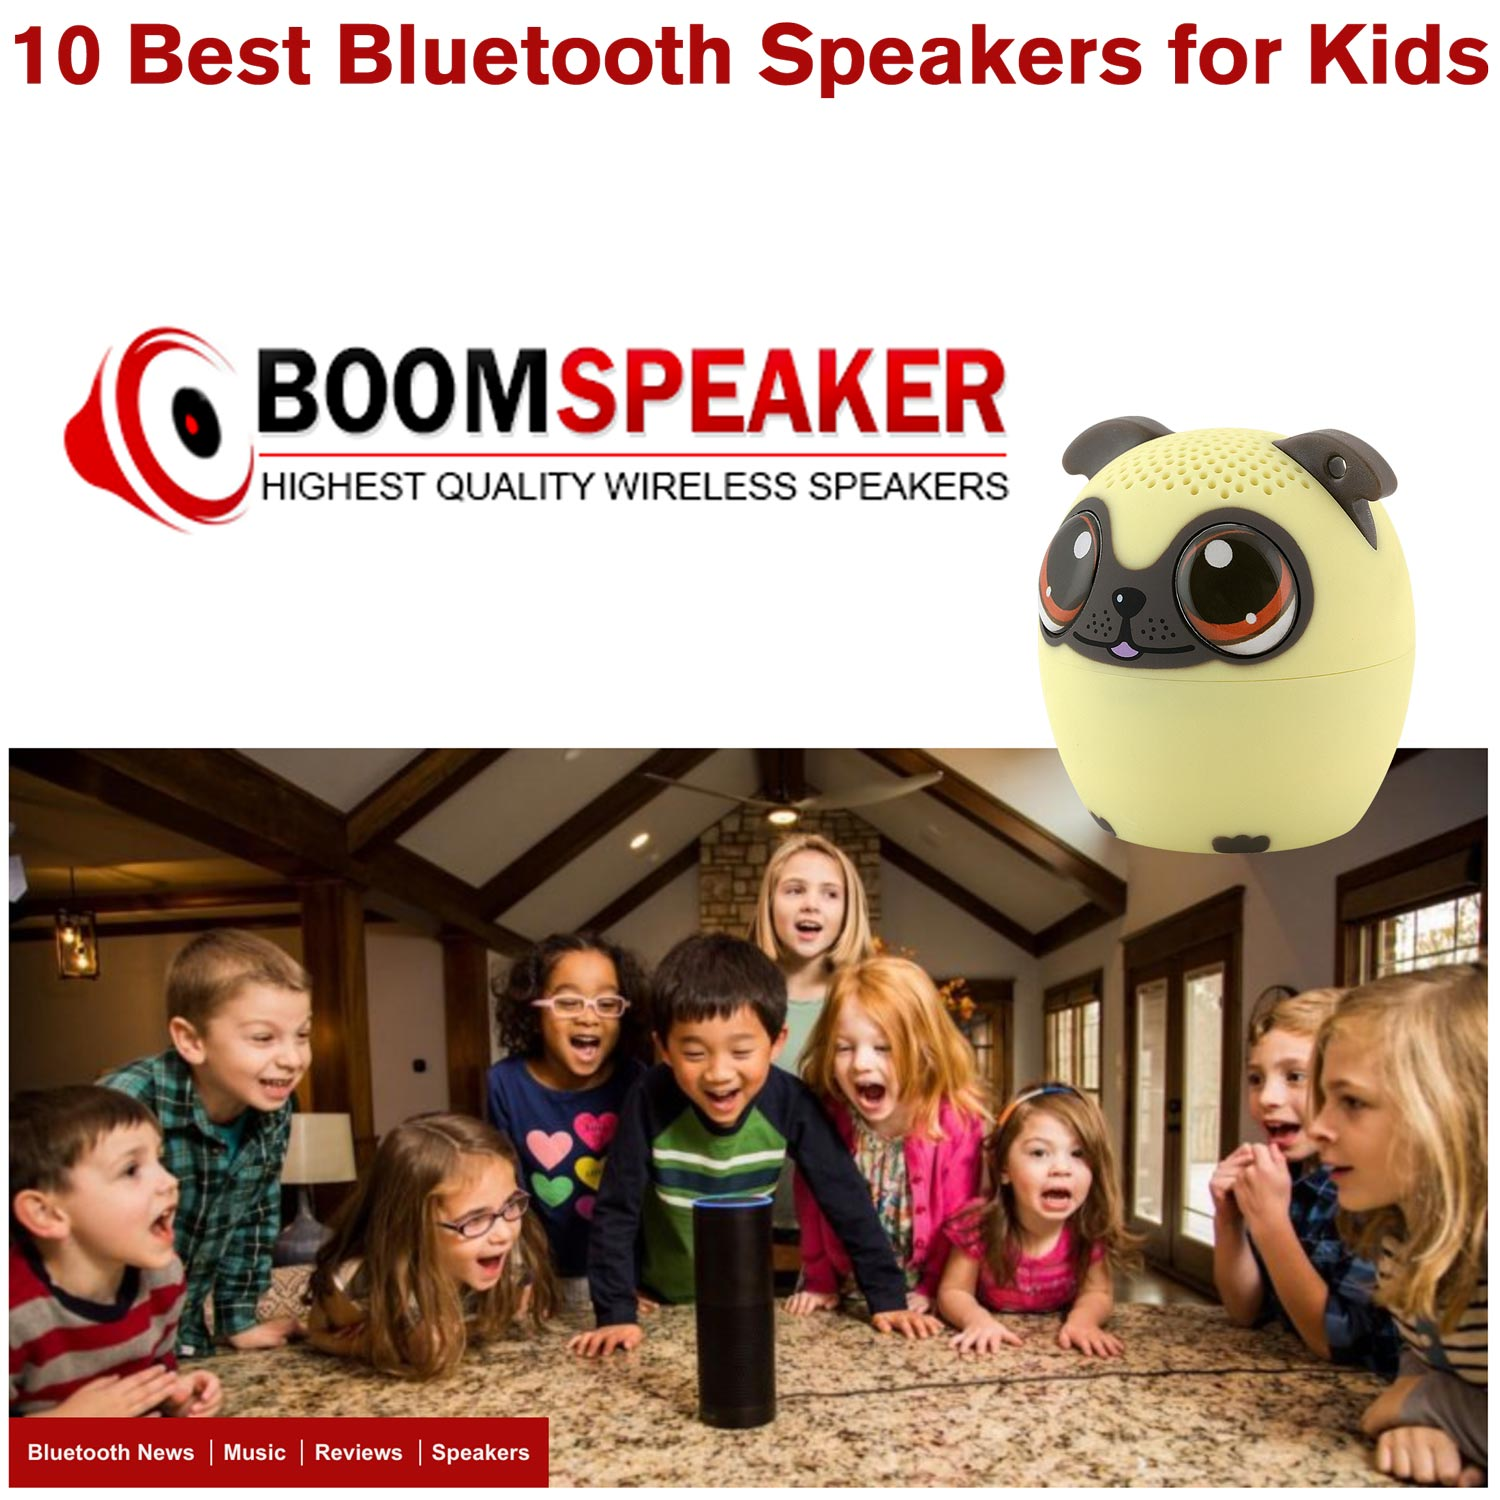 Boom Speaker Recognizes My Audio Pet as Top 5 Speakers for Kids